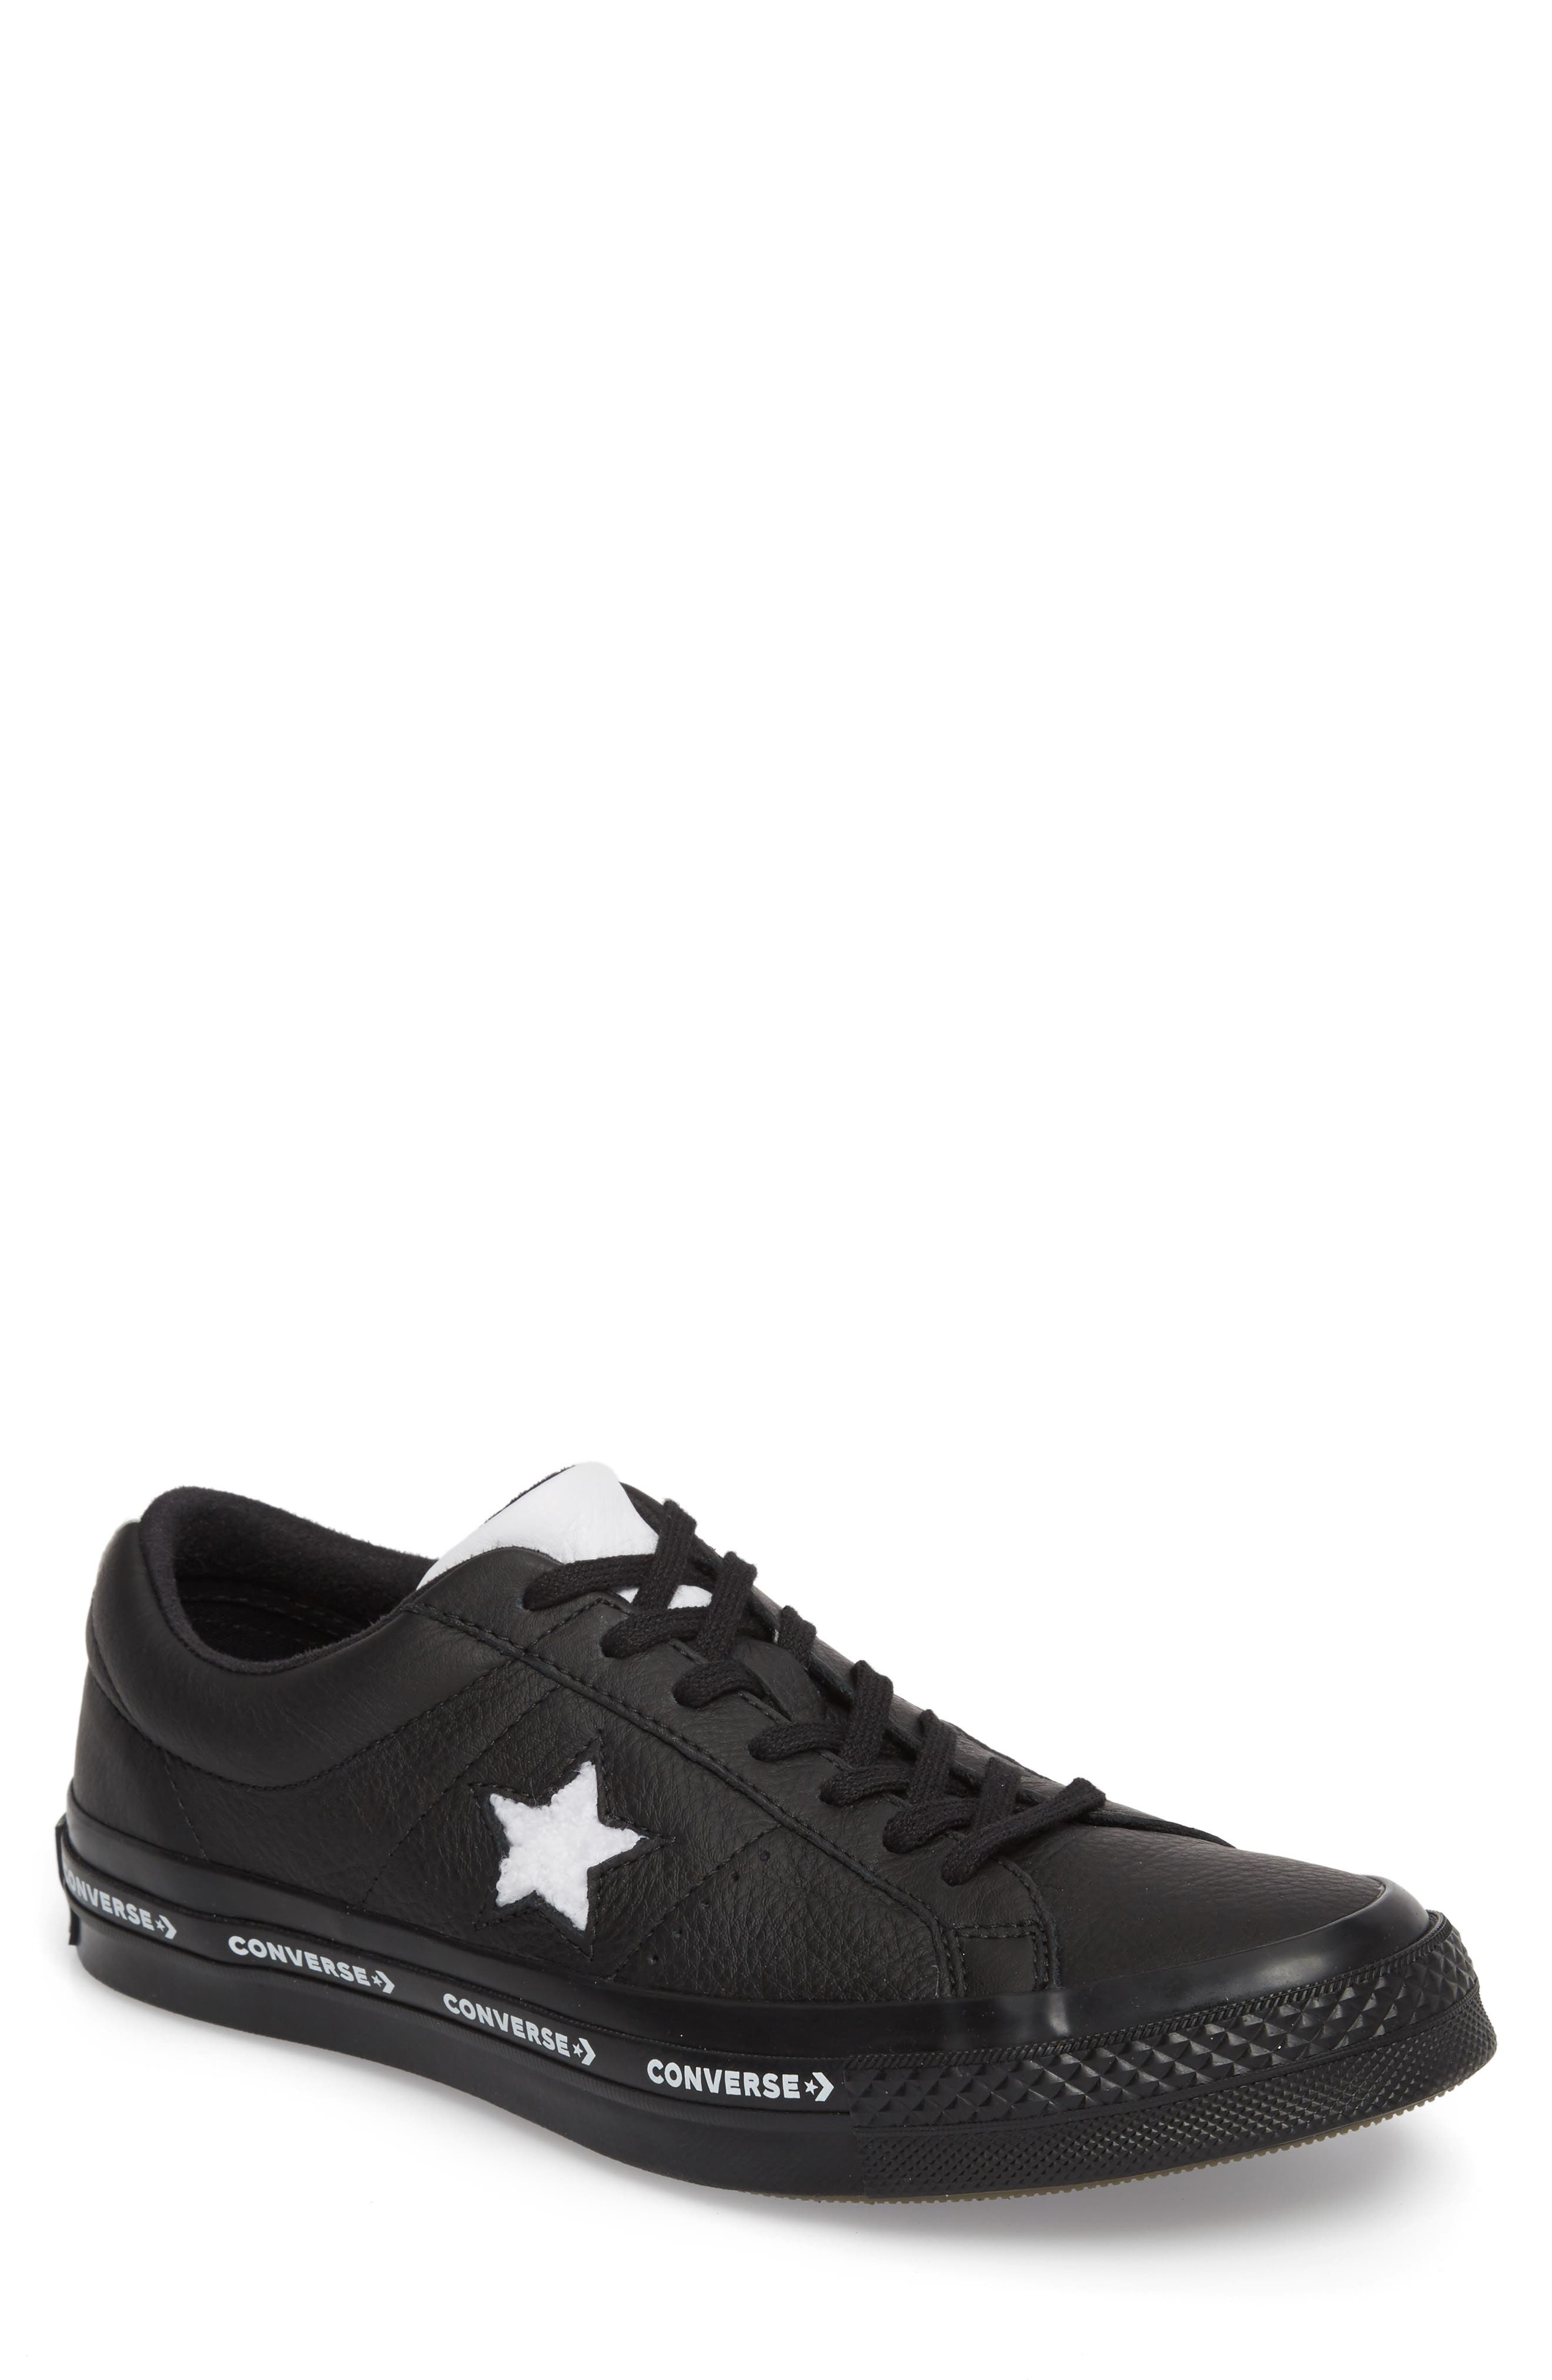 Chuck Taylor<sup>®</sup> One Star Pinstripe Sneaker,                             Main thumbnail 1, color,                             Black Leather